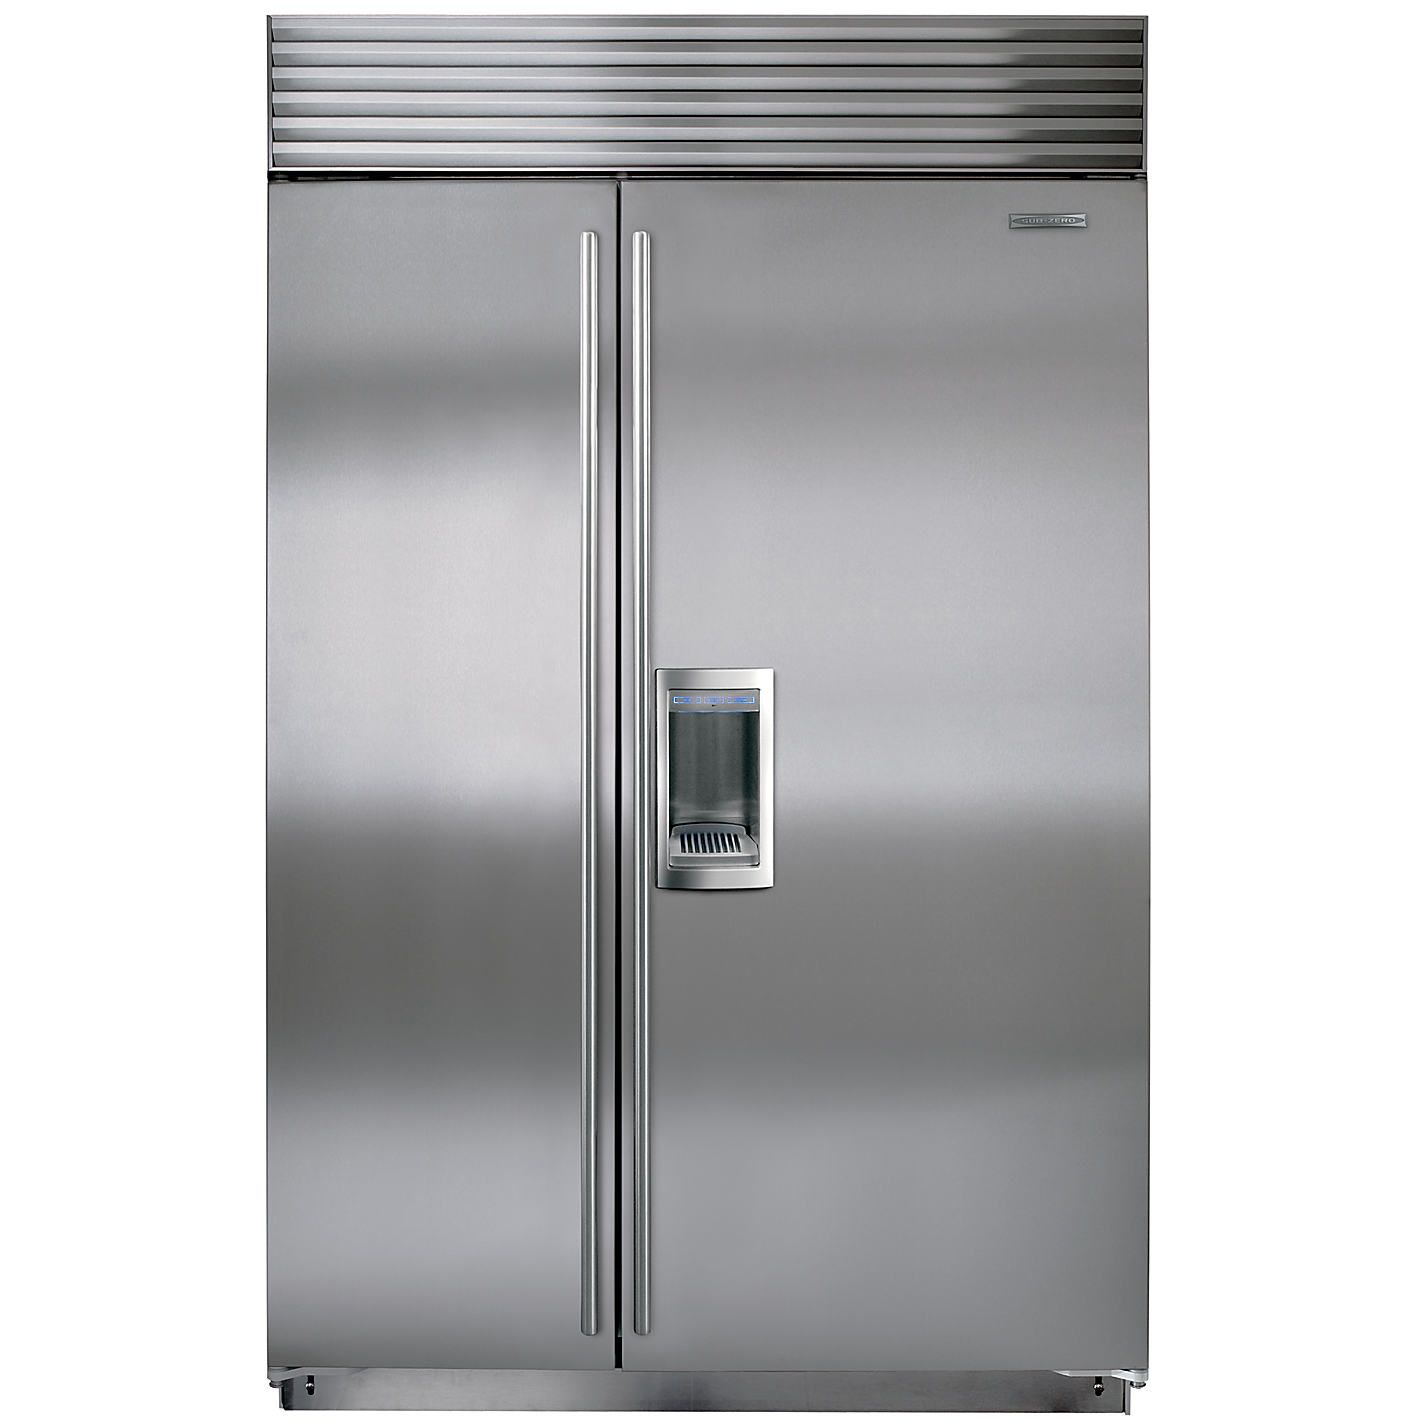 This Is A Sub Zero Brand Refrigerator Freezer Combo With A Dispenser We Perform Repair Service As Well Built In Refrigerator Sub Zero Built In Refrigerators